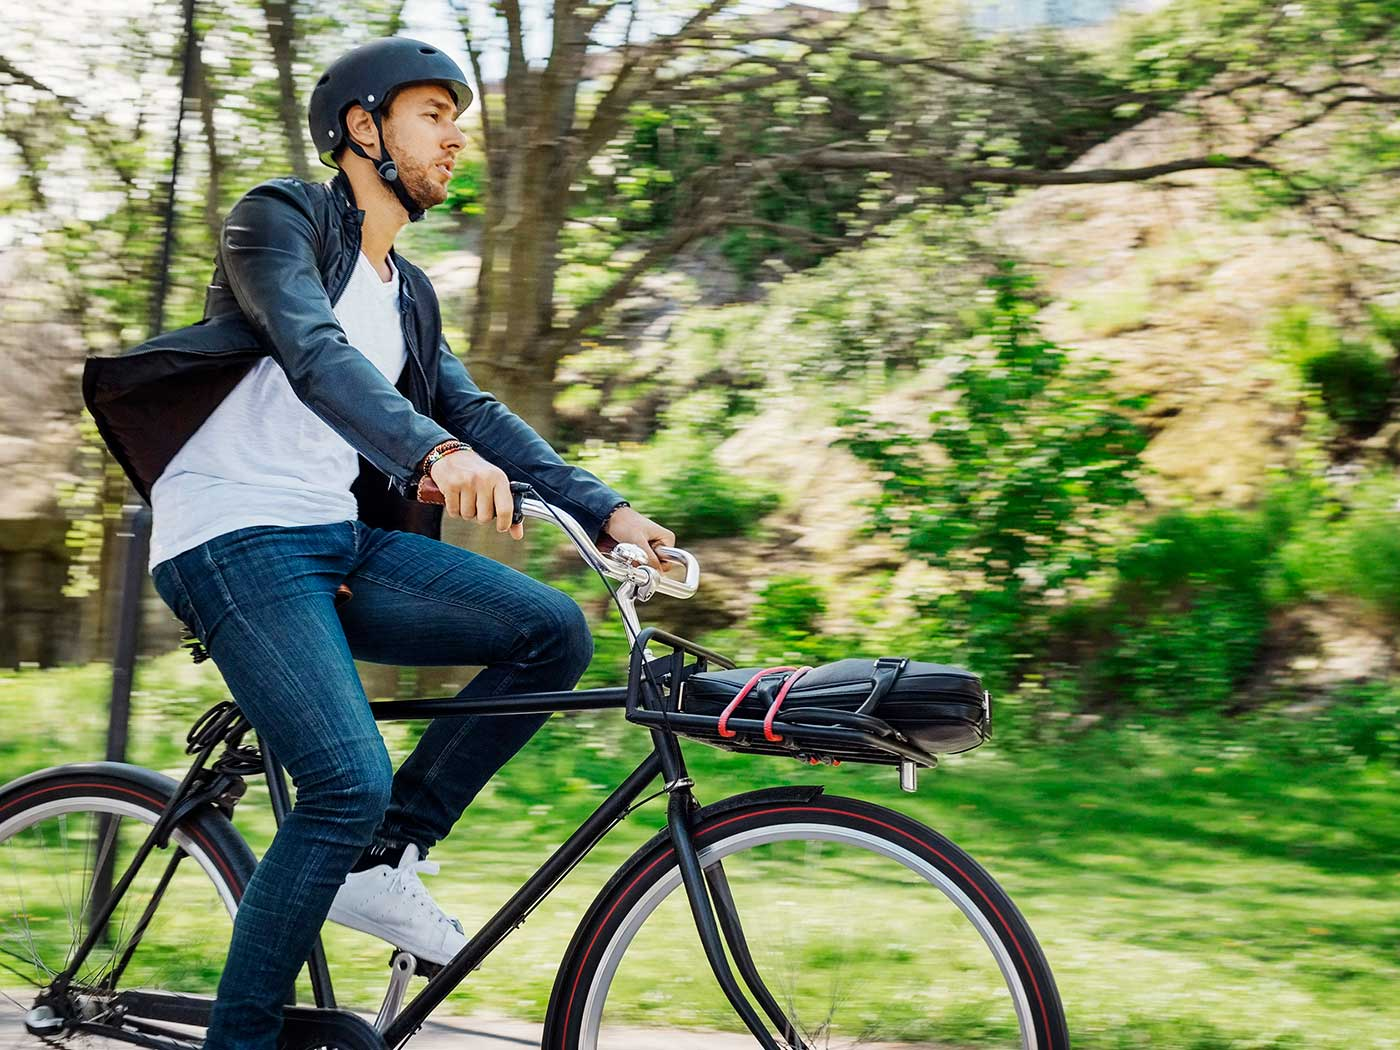 AAA of Nebraska: 3 Reasons to Ride Your Bike Without Fear